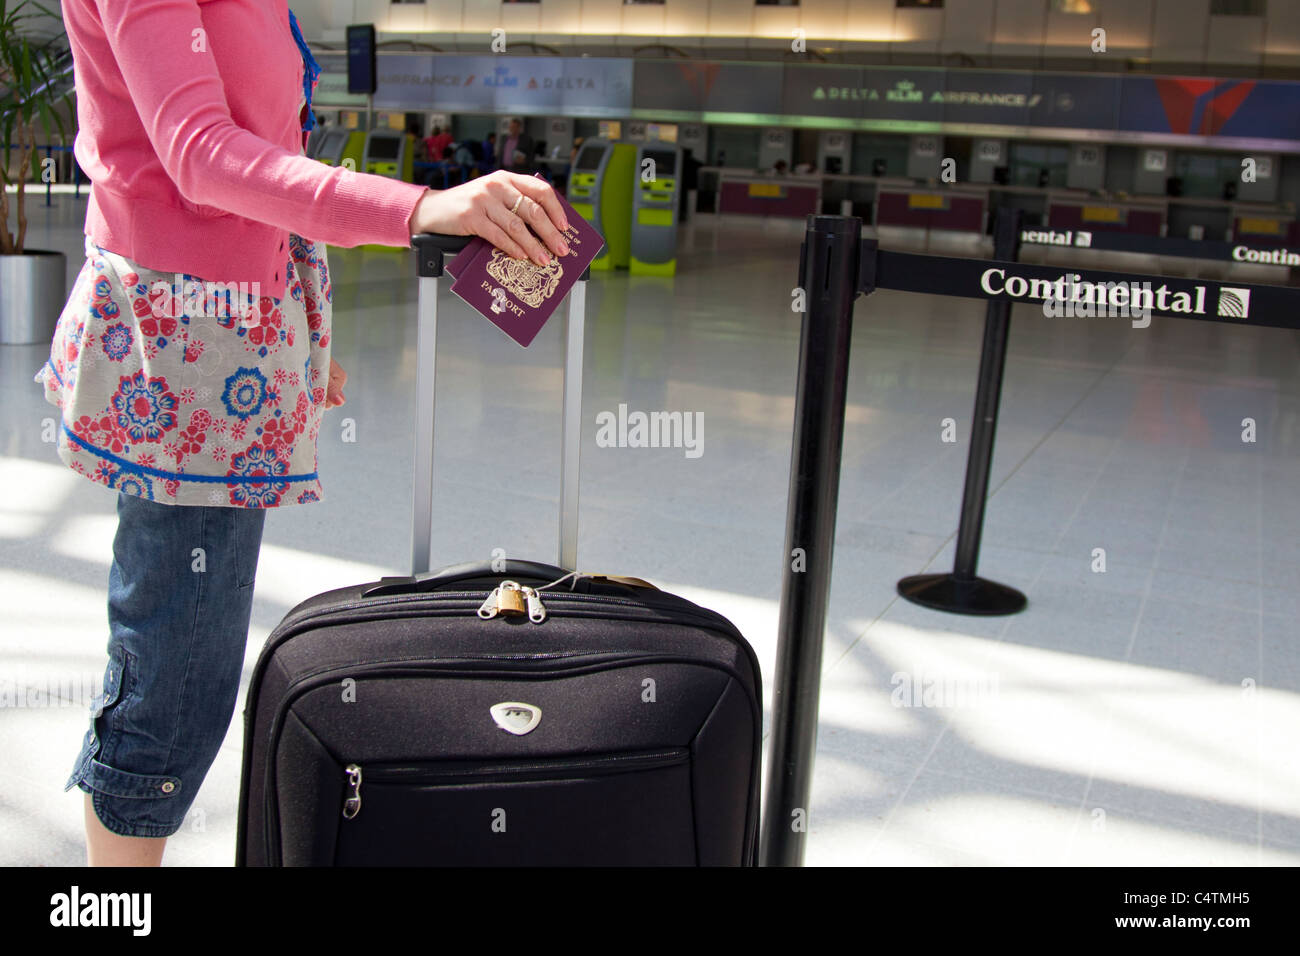 Terminal Manchester Airport England Holiday Stock Photos Terminal